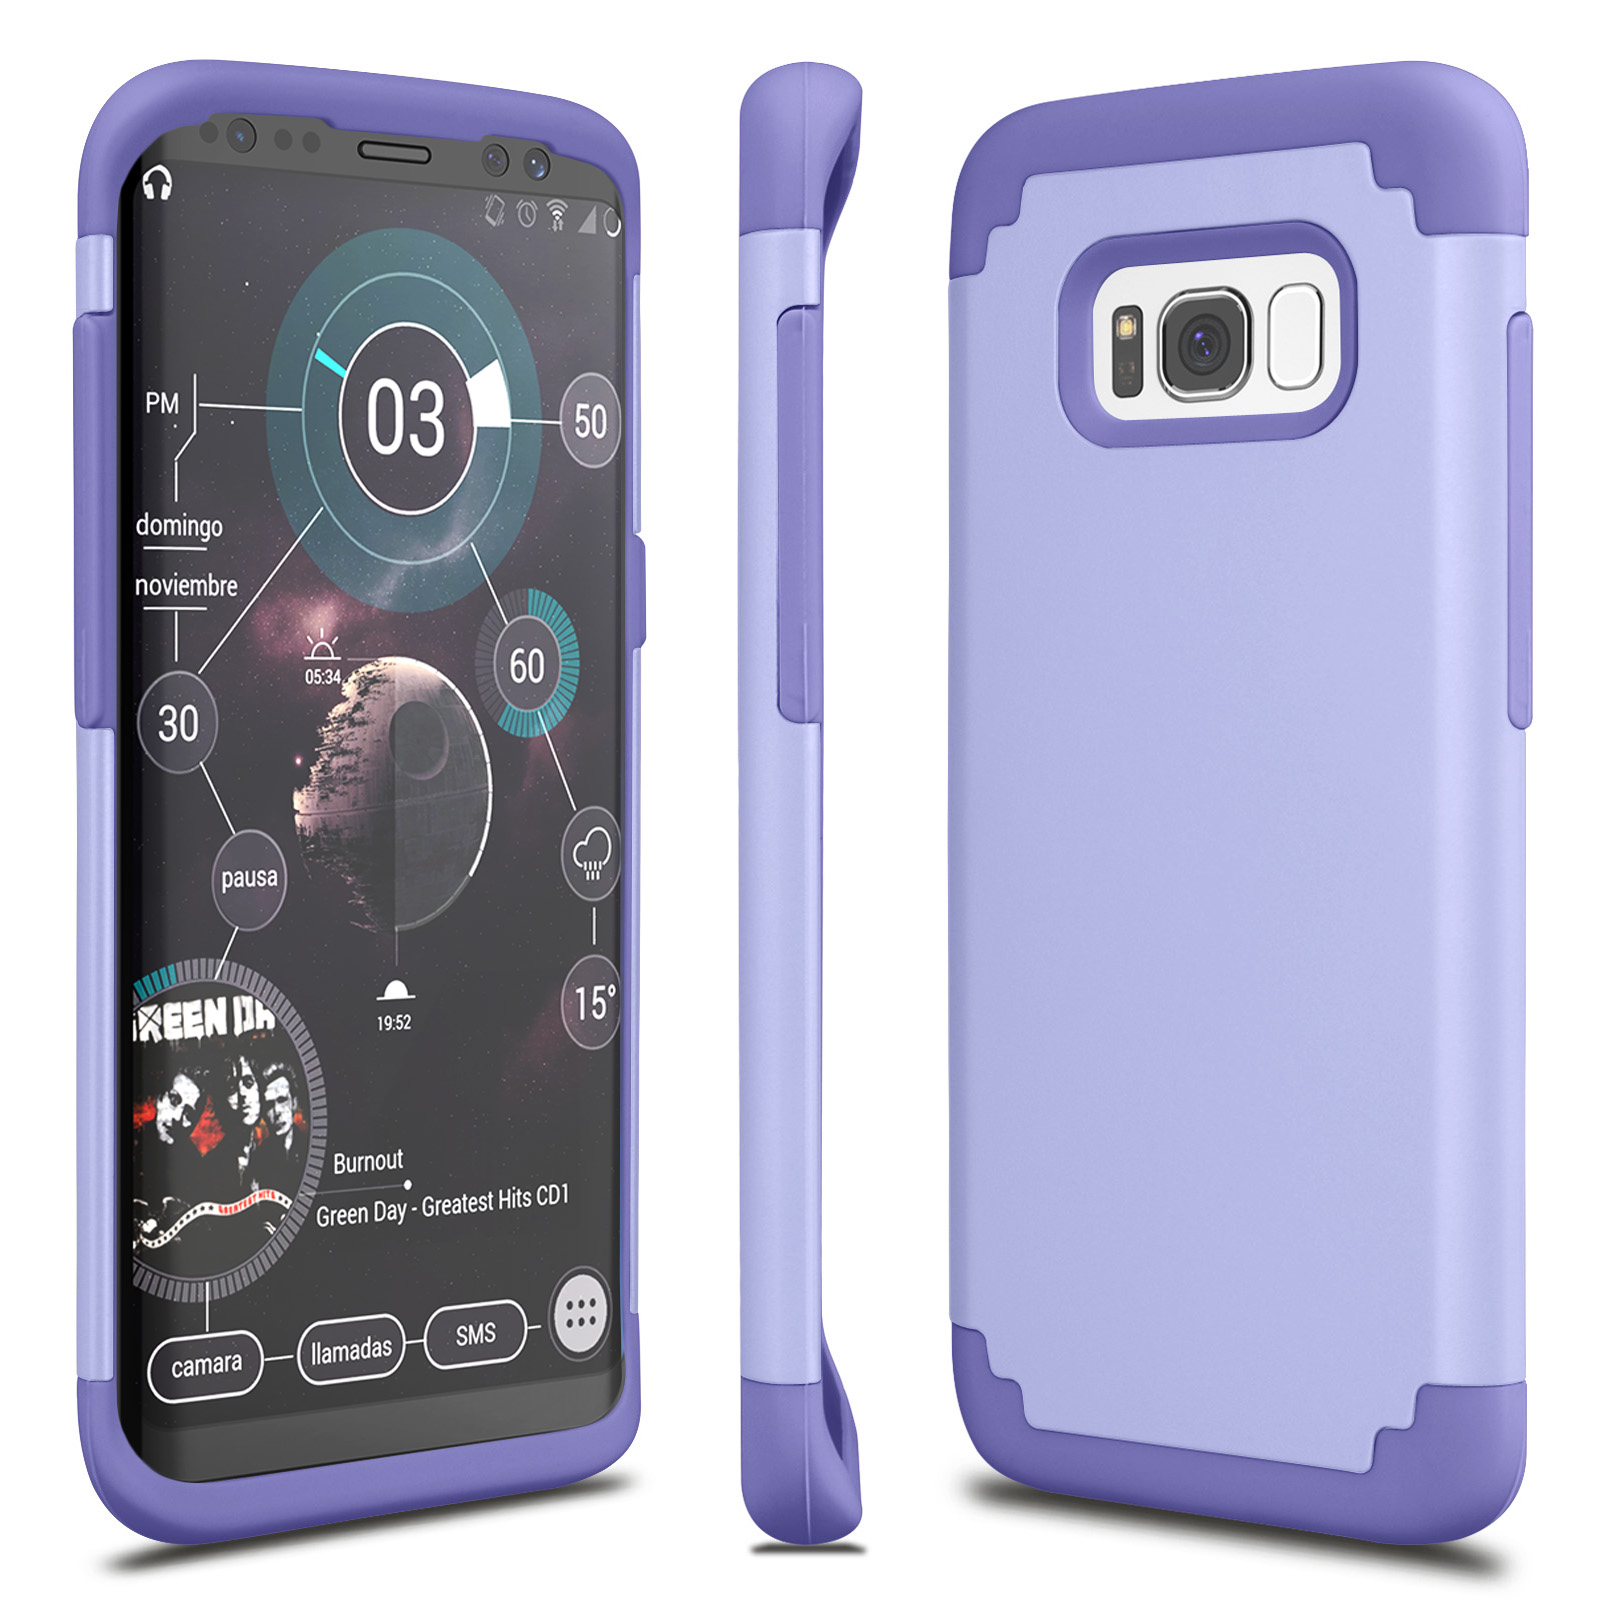 Galaxy S8 Case, Tekcoo [Tbaron Series] [Lavender] Shock Absorbing Hybrid Rubber Plastic Impact Defender Rugged Slim Hard Case Cover Shell For Samsung Galaxy S8 S VIII GS8 All Carriers